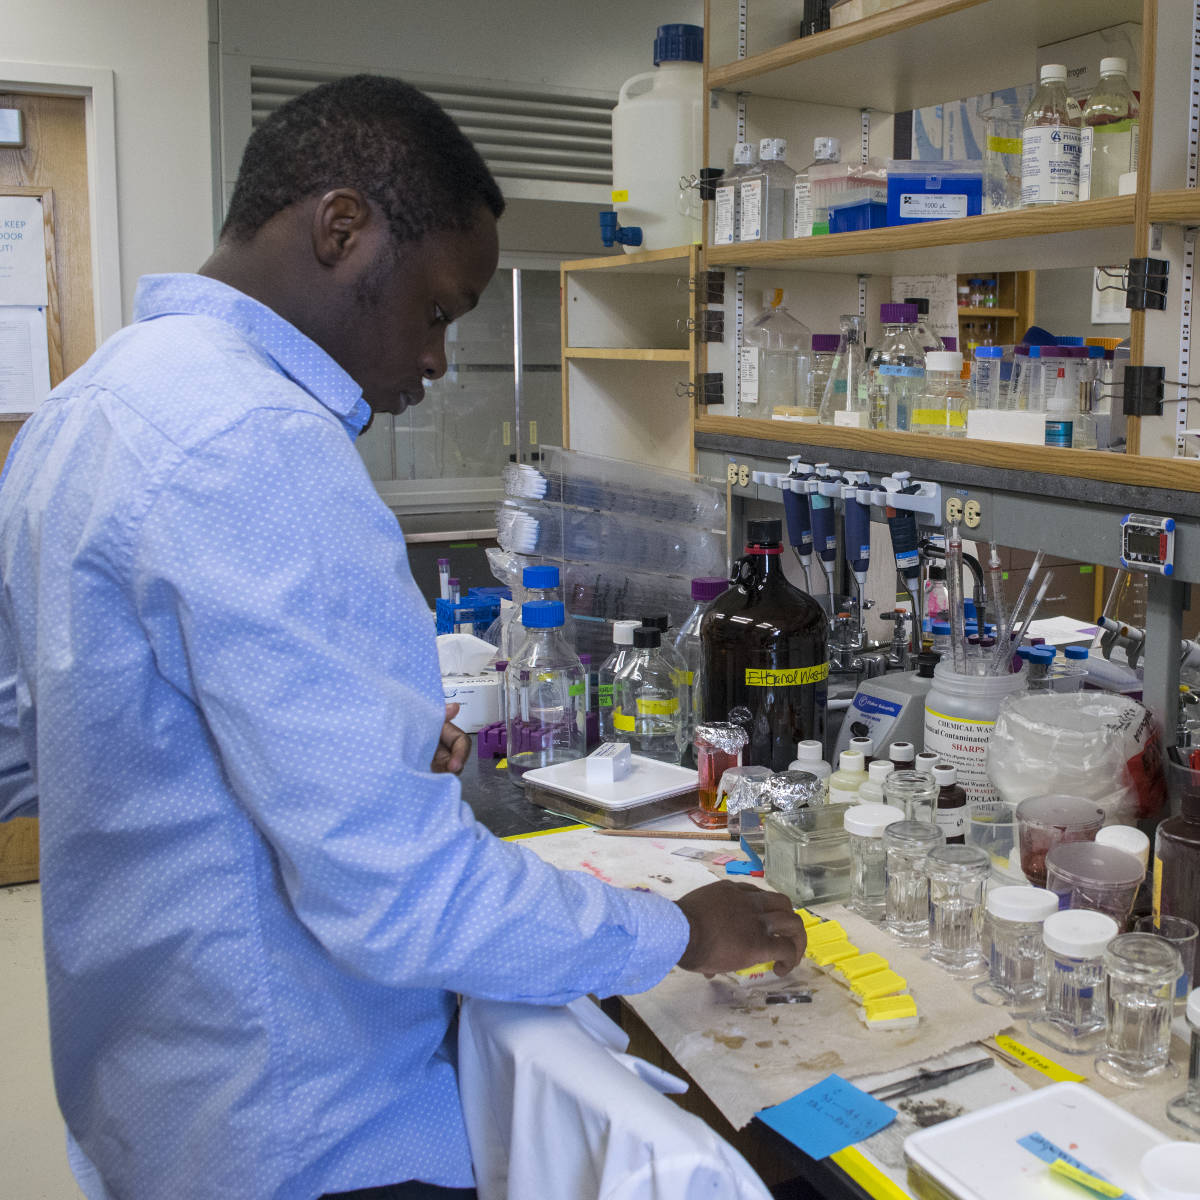 Emmanuel Ijezie prepares microscope slides at a crowded lab bench.